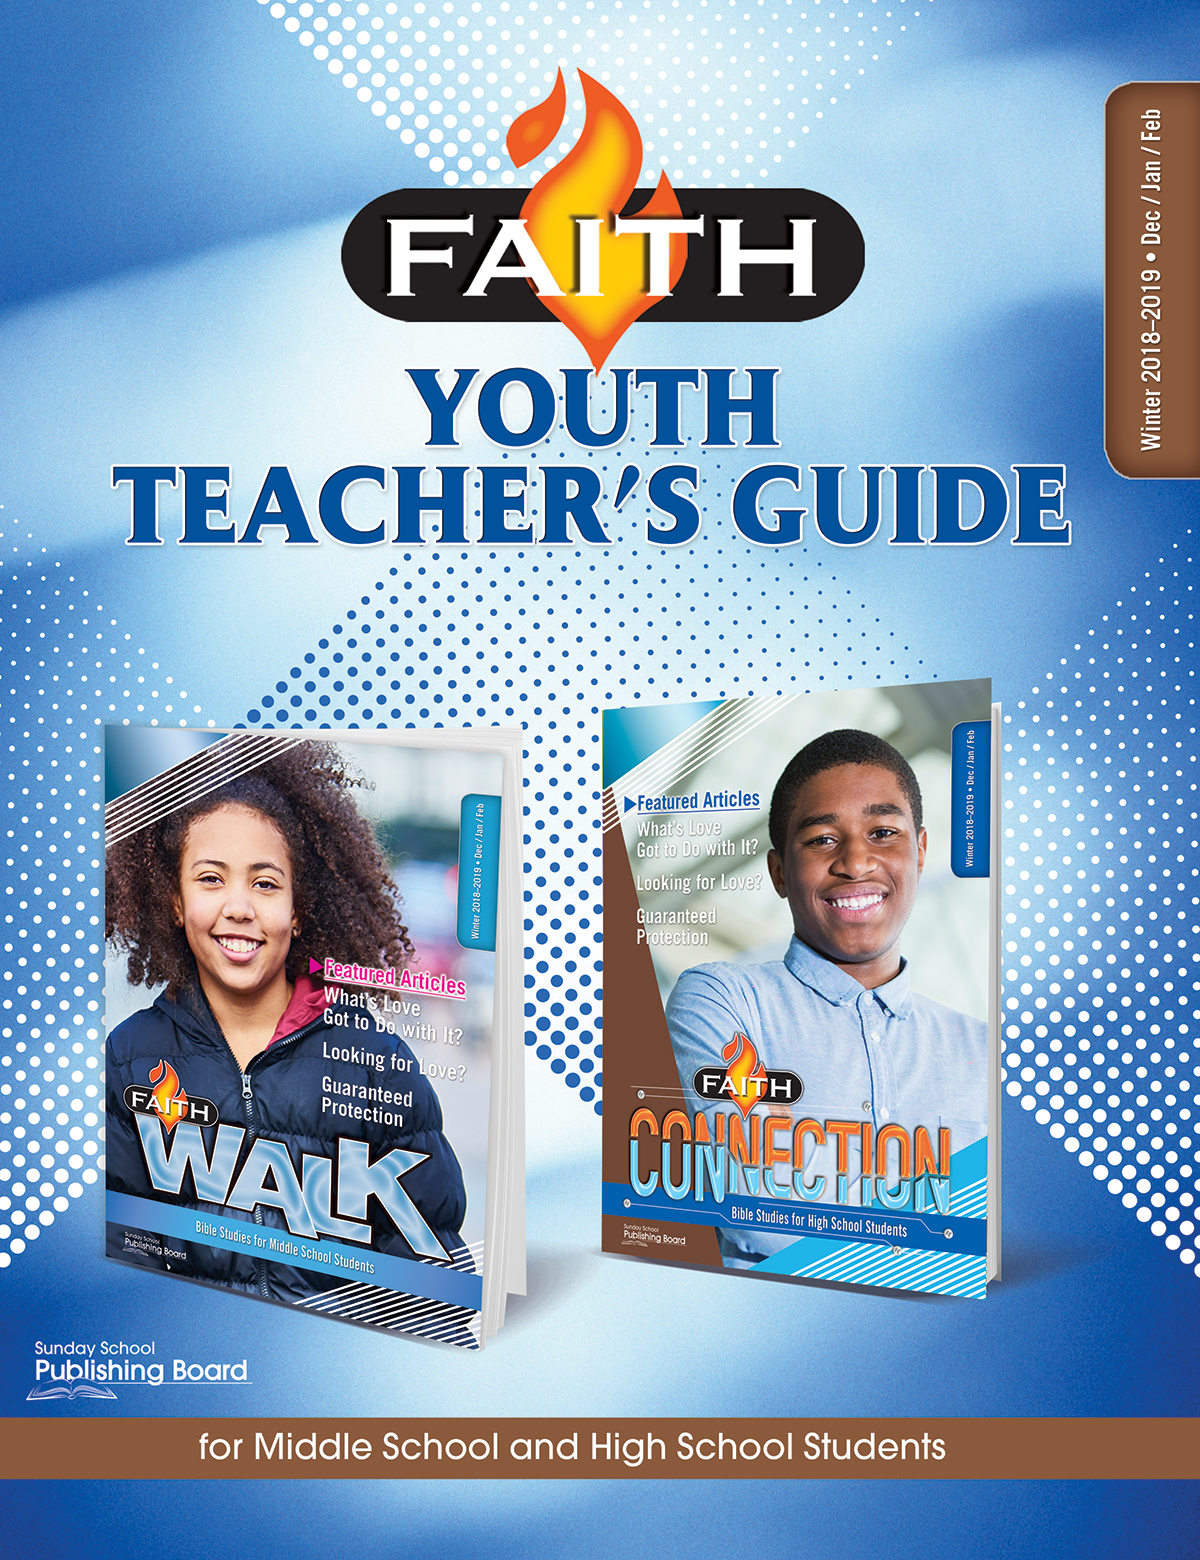 Faith Series Youth Teachers Guide For Middle School And High